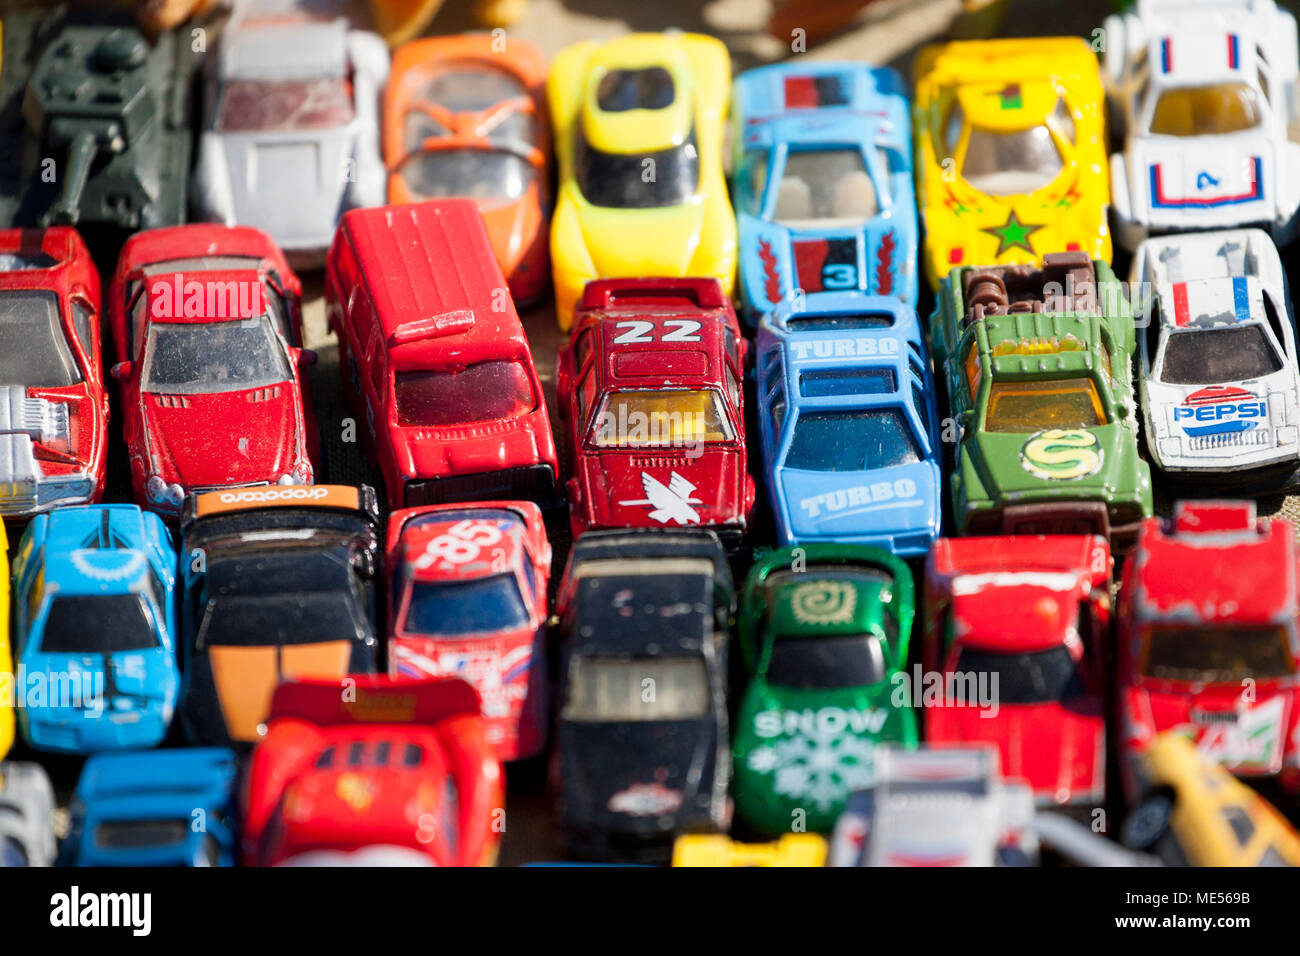 Old toy cars for sale at a vintage fair England UK GB - Stock Image